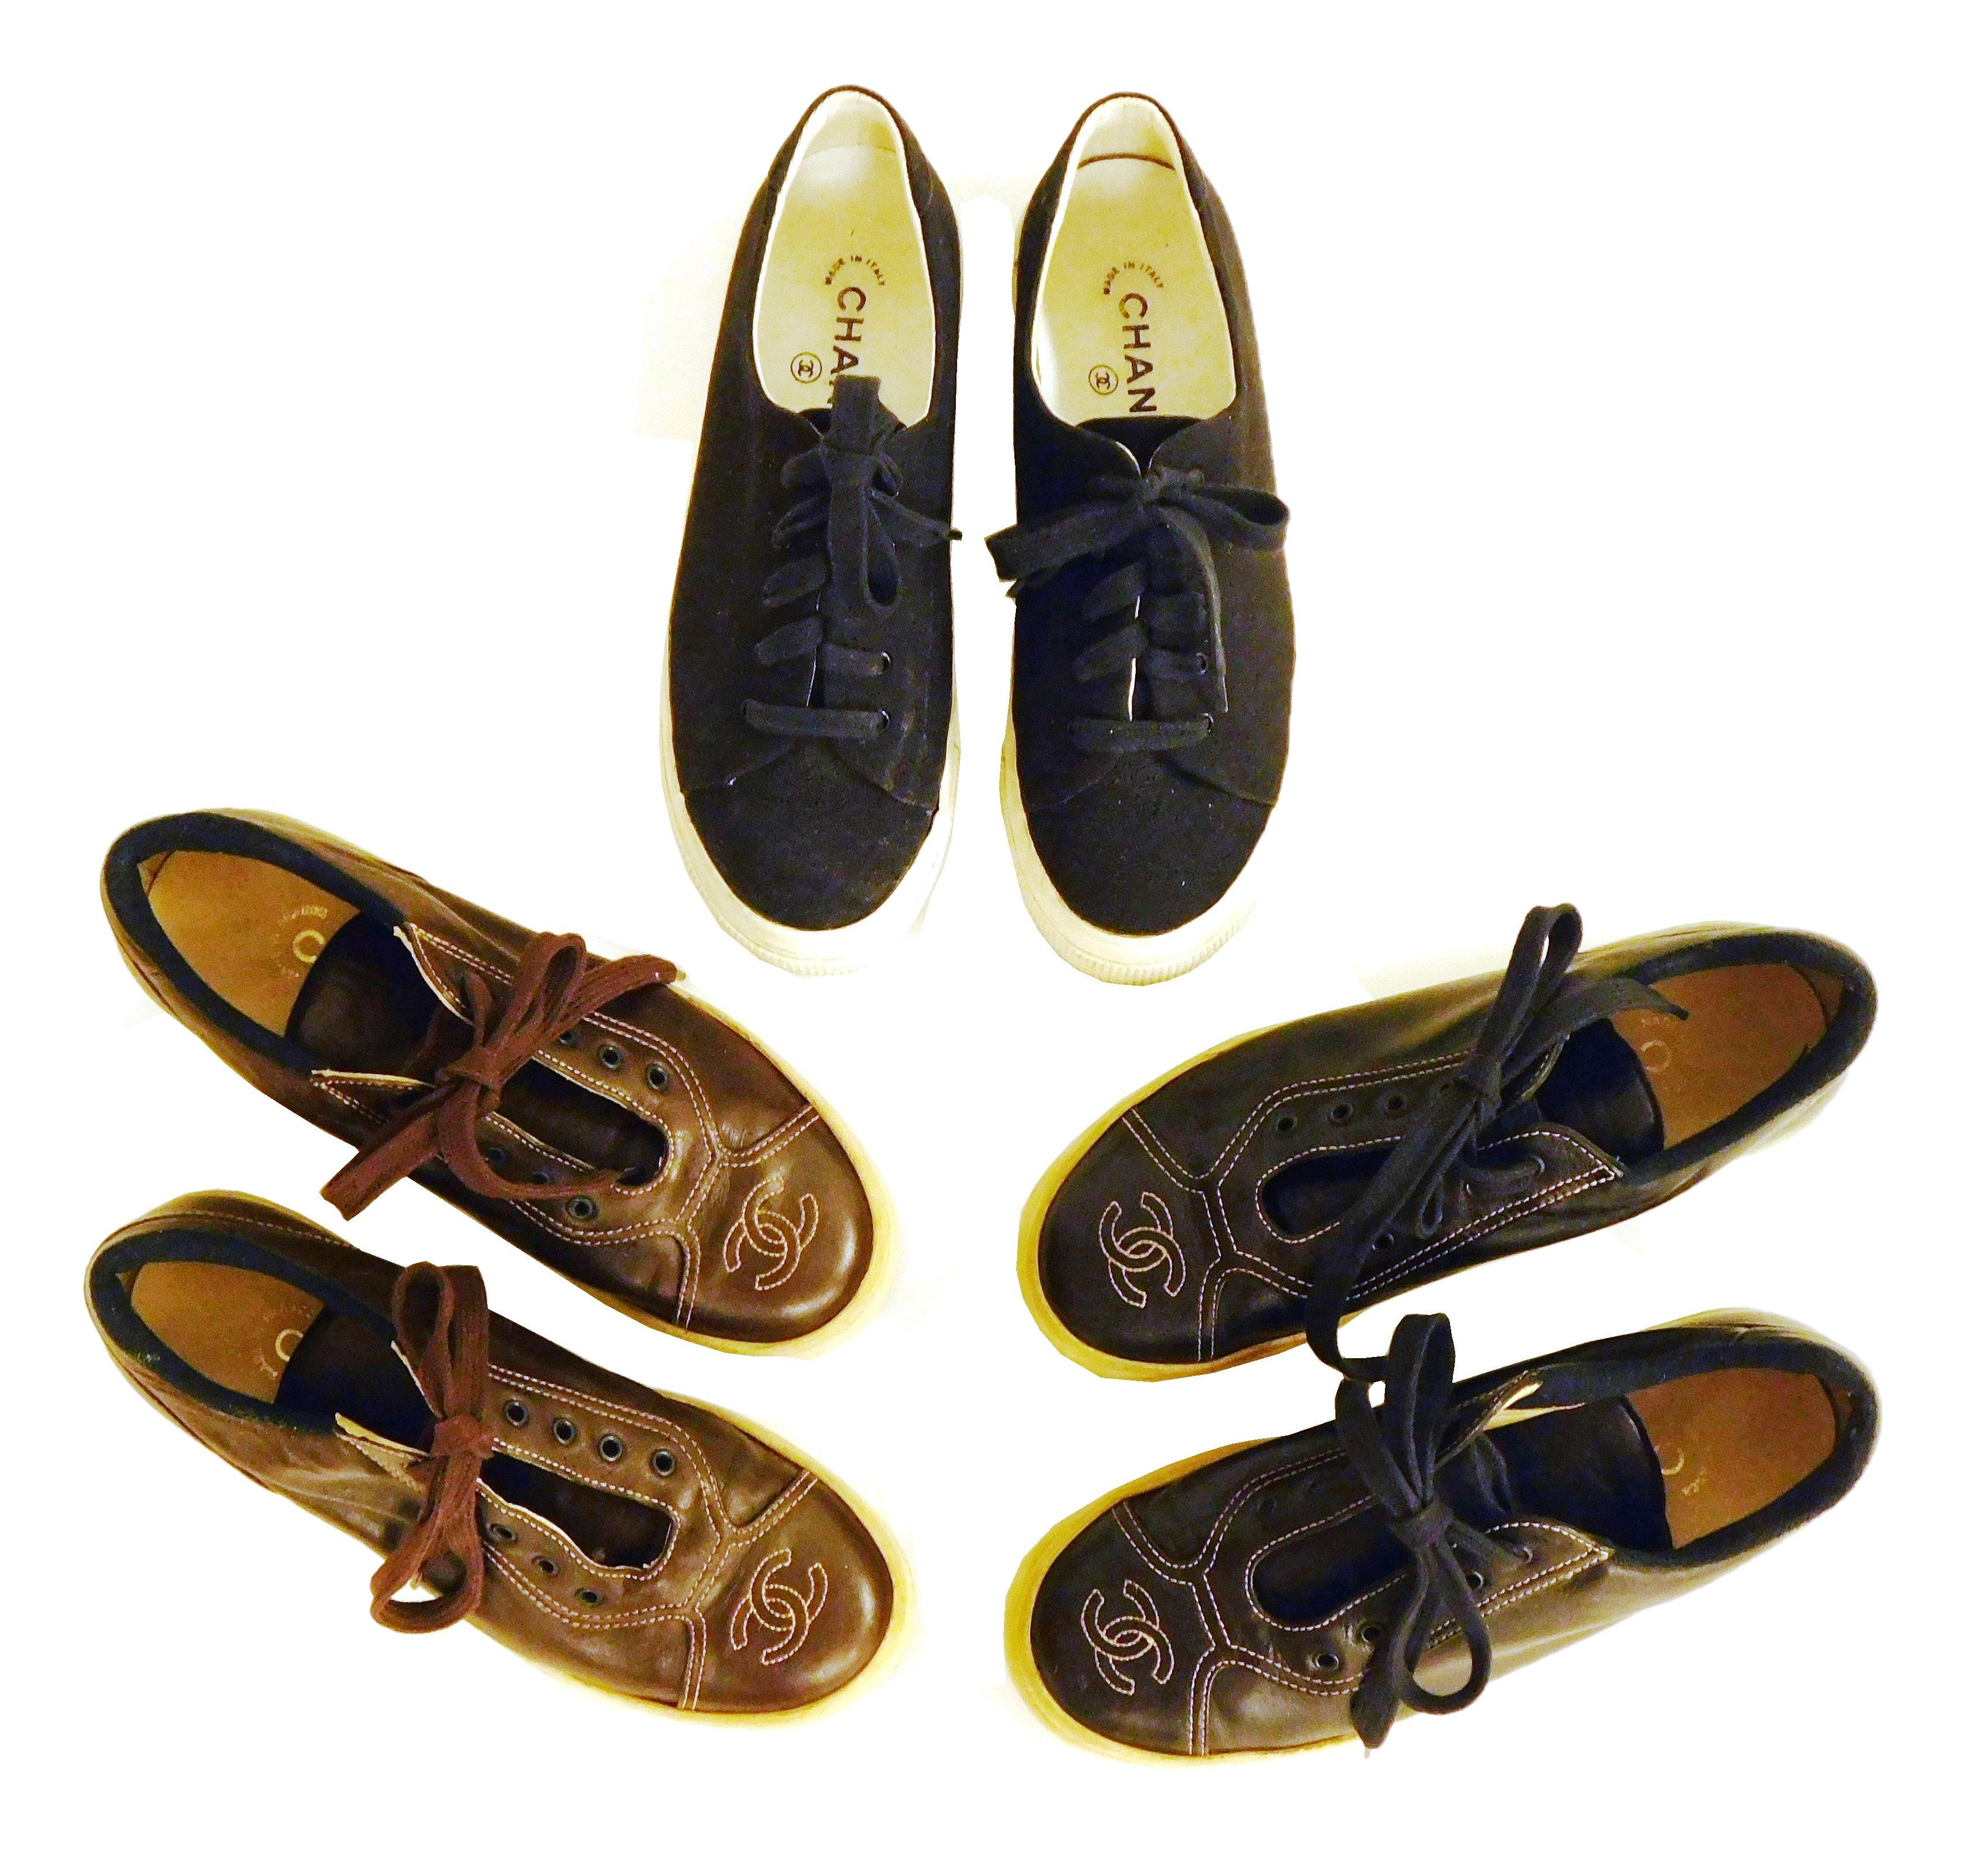 VINTAGE CLOTHING: Three pairs of women's Chanel sneakers with thick soles, all size 37, styles include: two patent leather pairs wit..